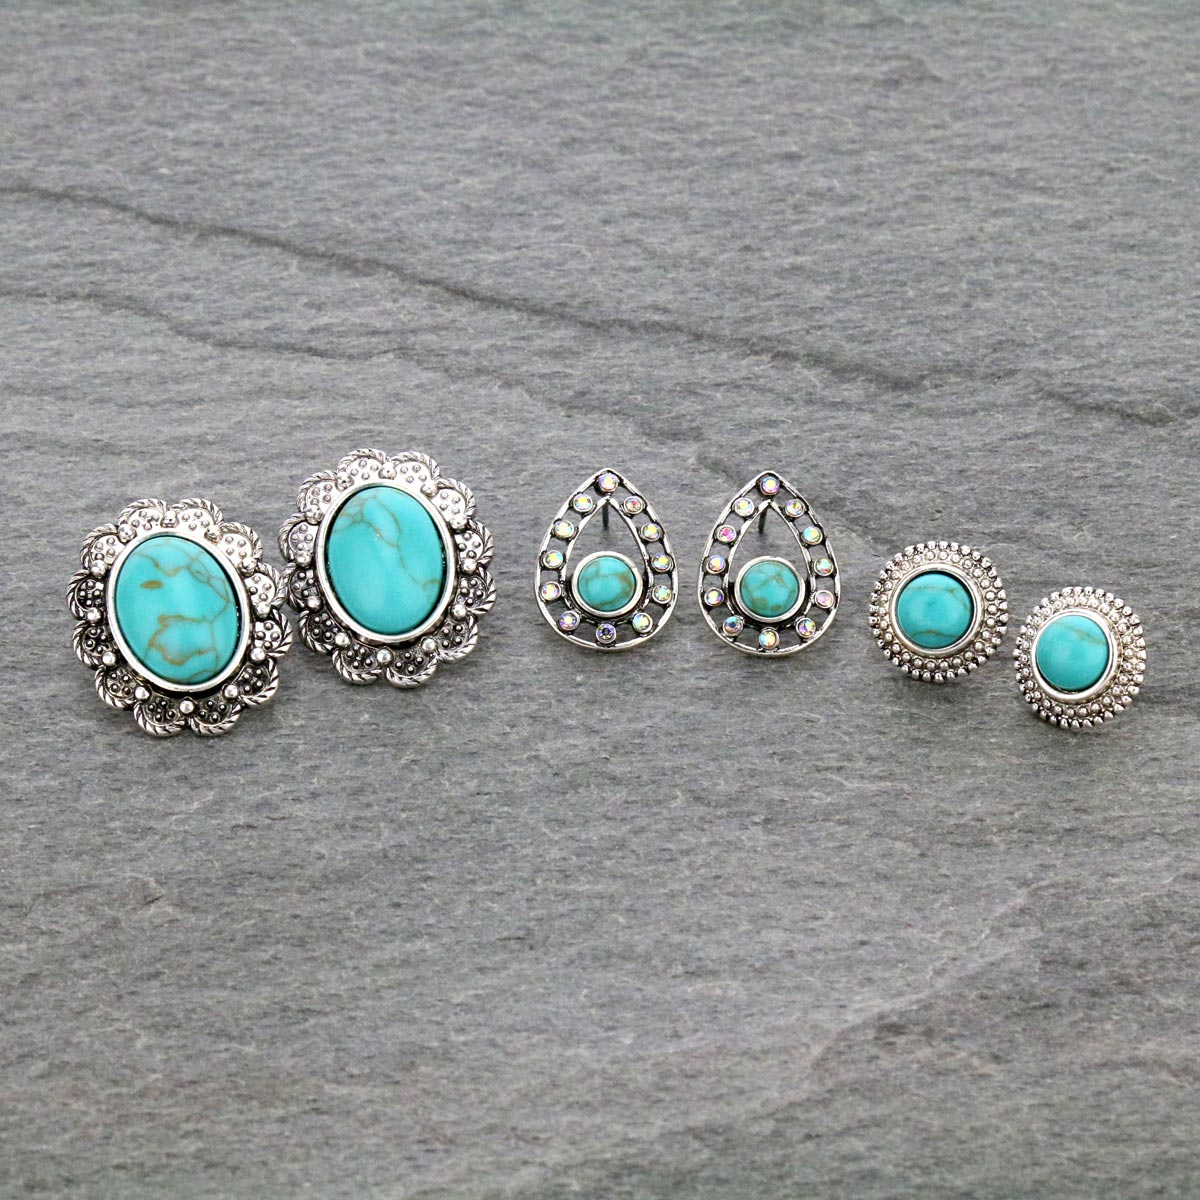 3 Pair Stone Stud Earrings Set-ER1118/TQ